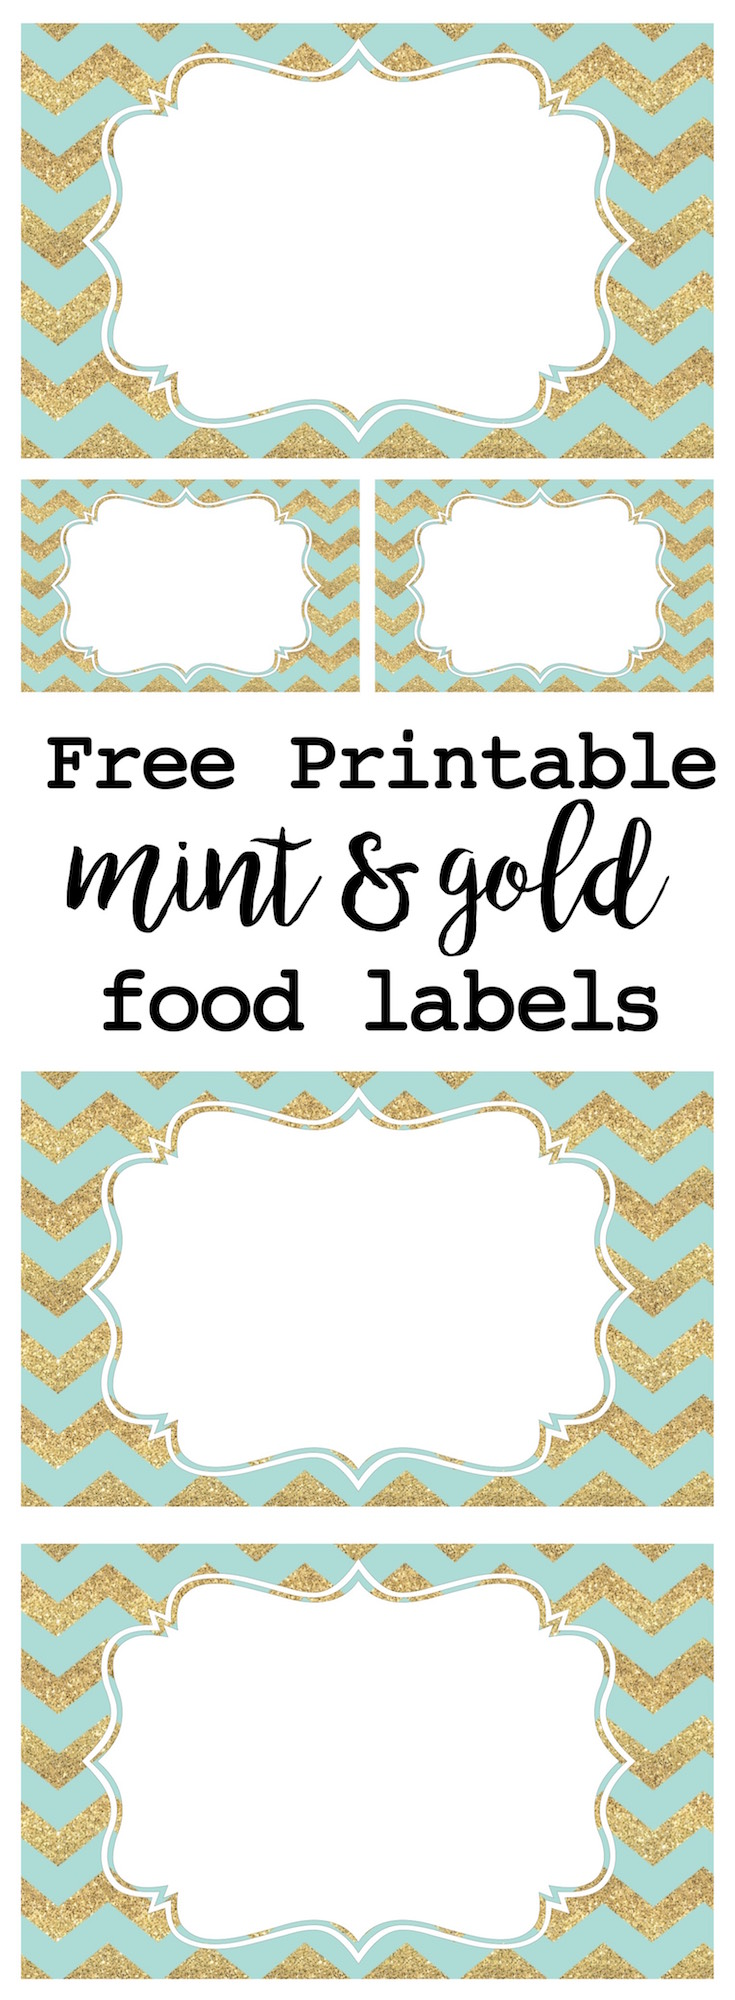 graphic about Free Printable Food Labels for Party named Mint and Gold Occasion Foods Labels - Paper Path Style